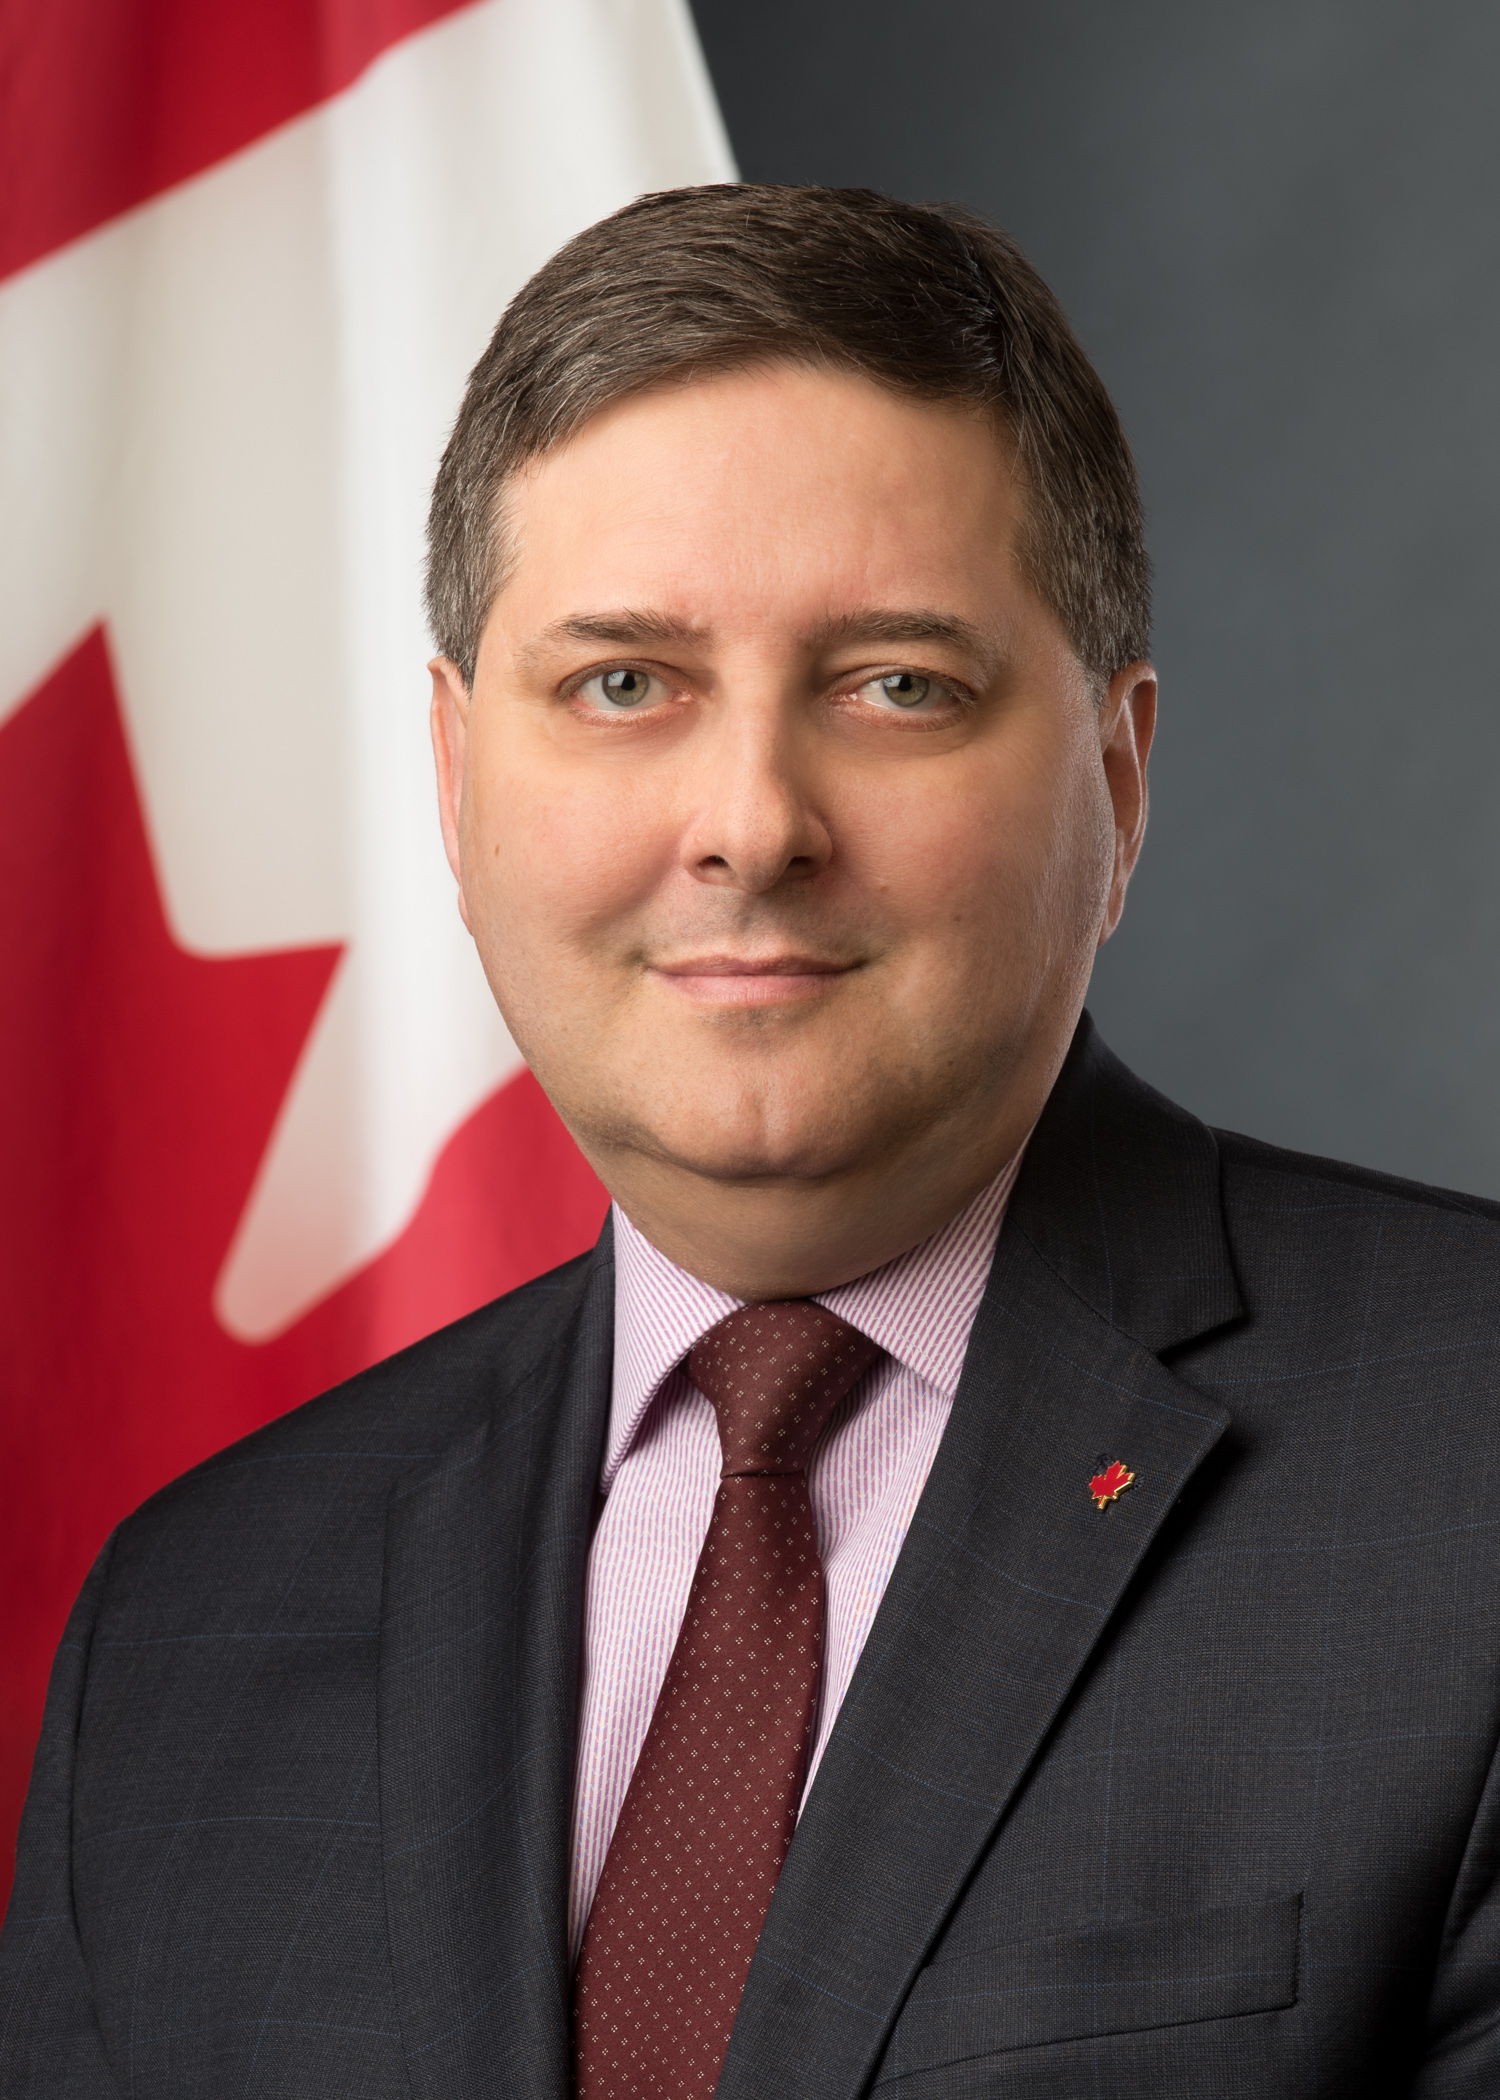 Ariel Delouya, Consul General of Canada in Minneapolis, United States